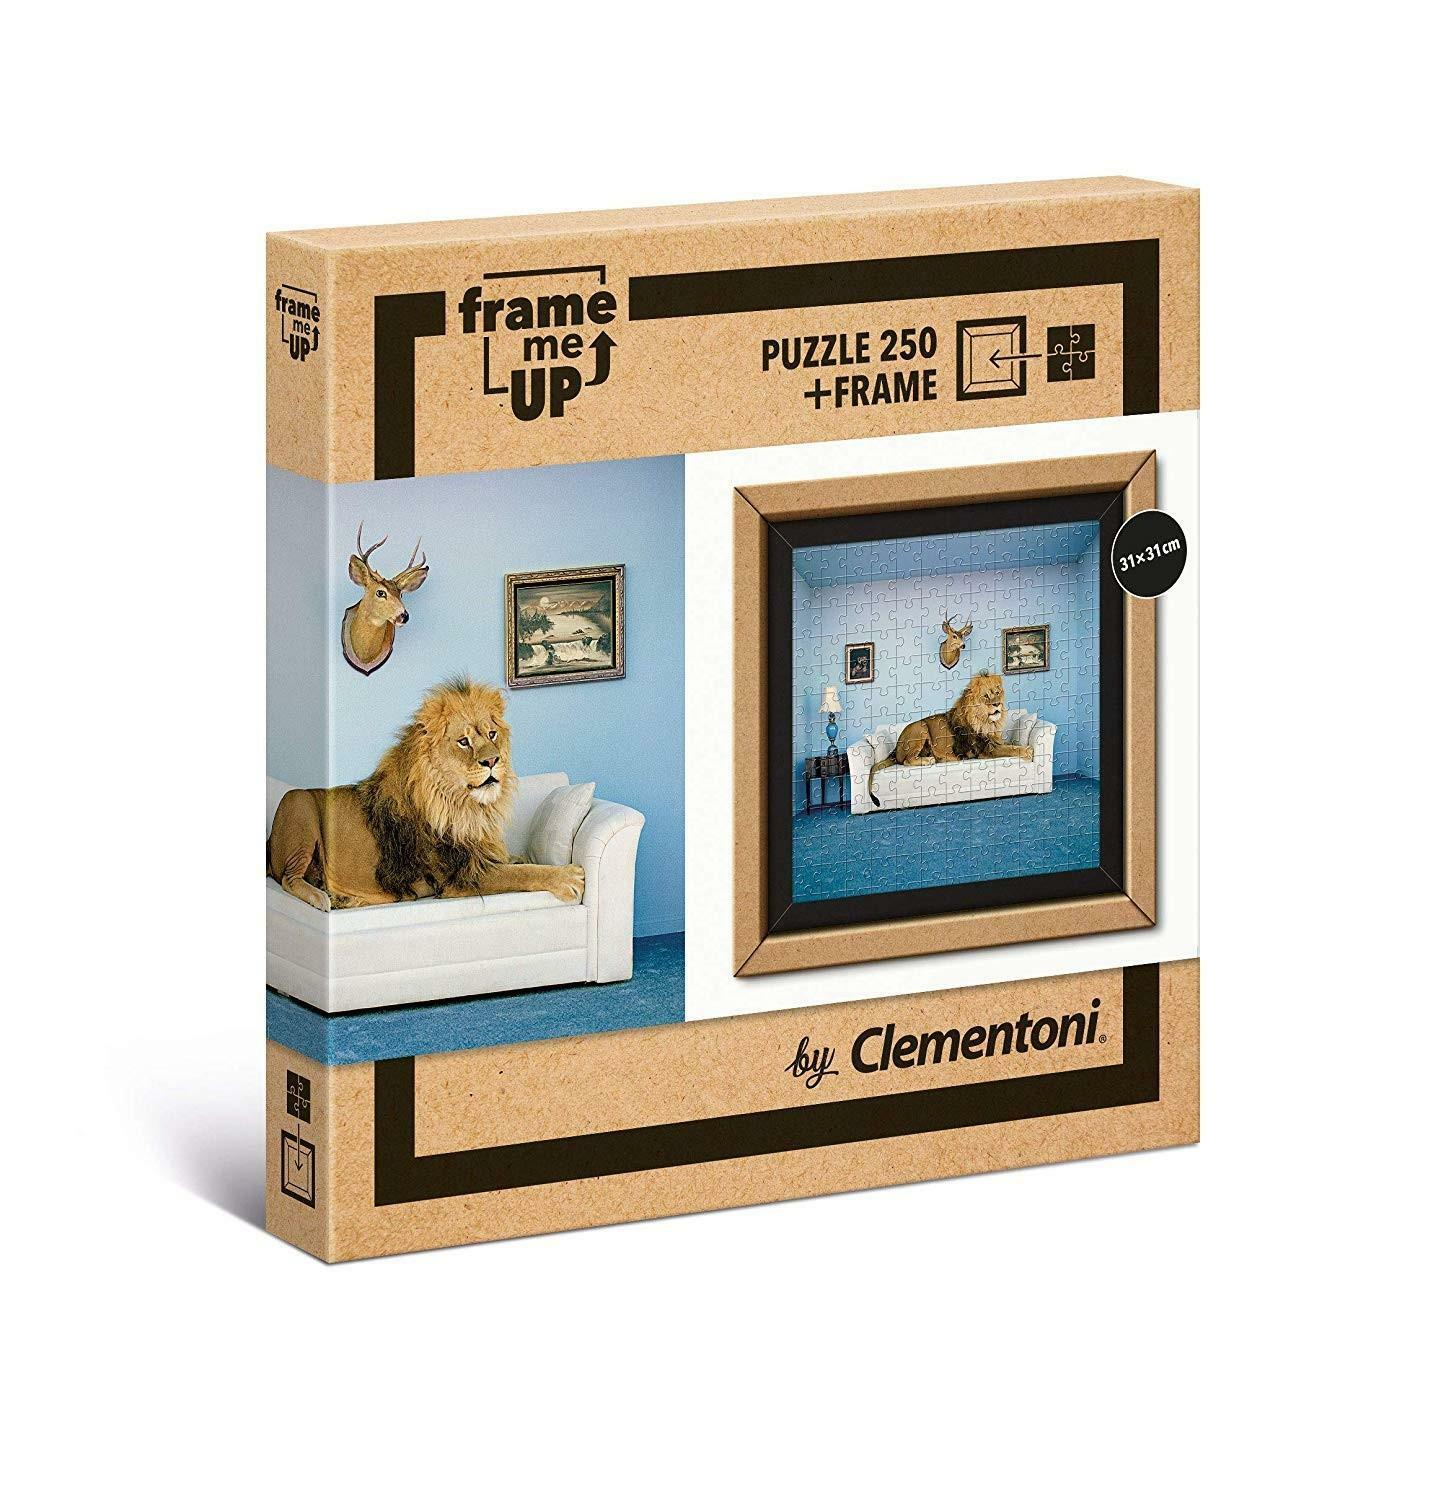 clementoni frame me up - puzzle 250 pz - master of the house